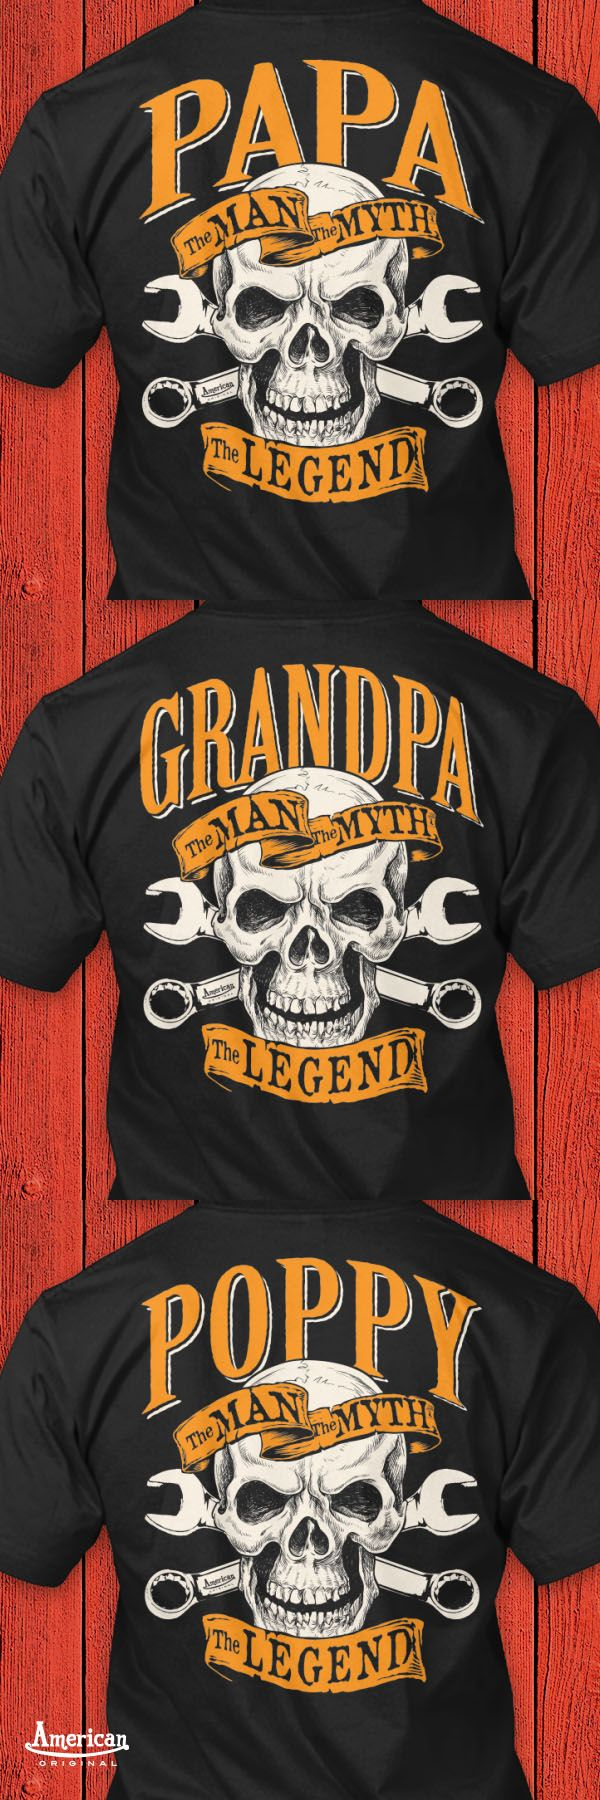 Order them right here http://teespring.com/stores/the-legend-2  A sure hit for any Harley riding, wrench spinning, hot rod building mechanic dad or grandfather. Perfect if he's hanging out in the man cave or riding with friends he'll be loving that you call him the legend. We have Papa, Dad, PawPaw, Pops, Pop Pop, Poppy, PaPaw, Grandpa, Daddy, Pappy, Pop, Pa, Poppa, Opa, Grampy and Gramps.  Order here http://teespring.com/stores/the-legend-2